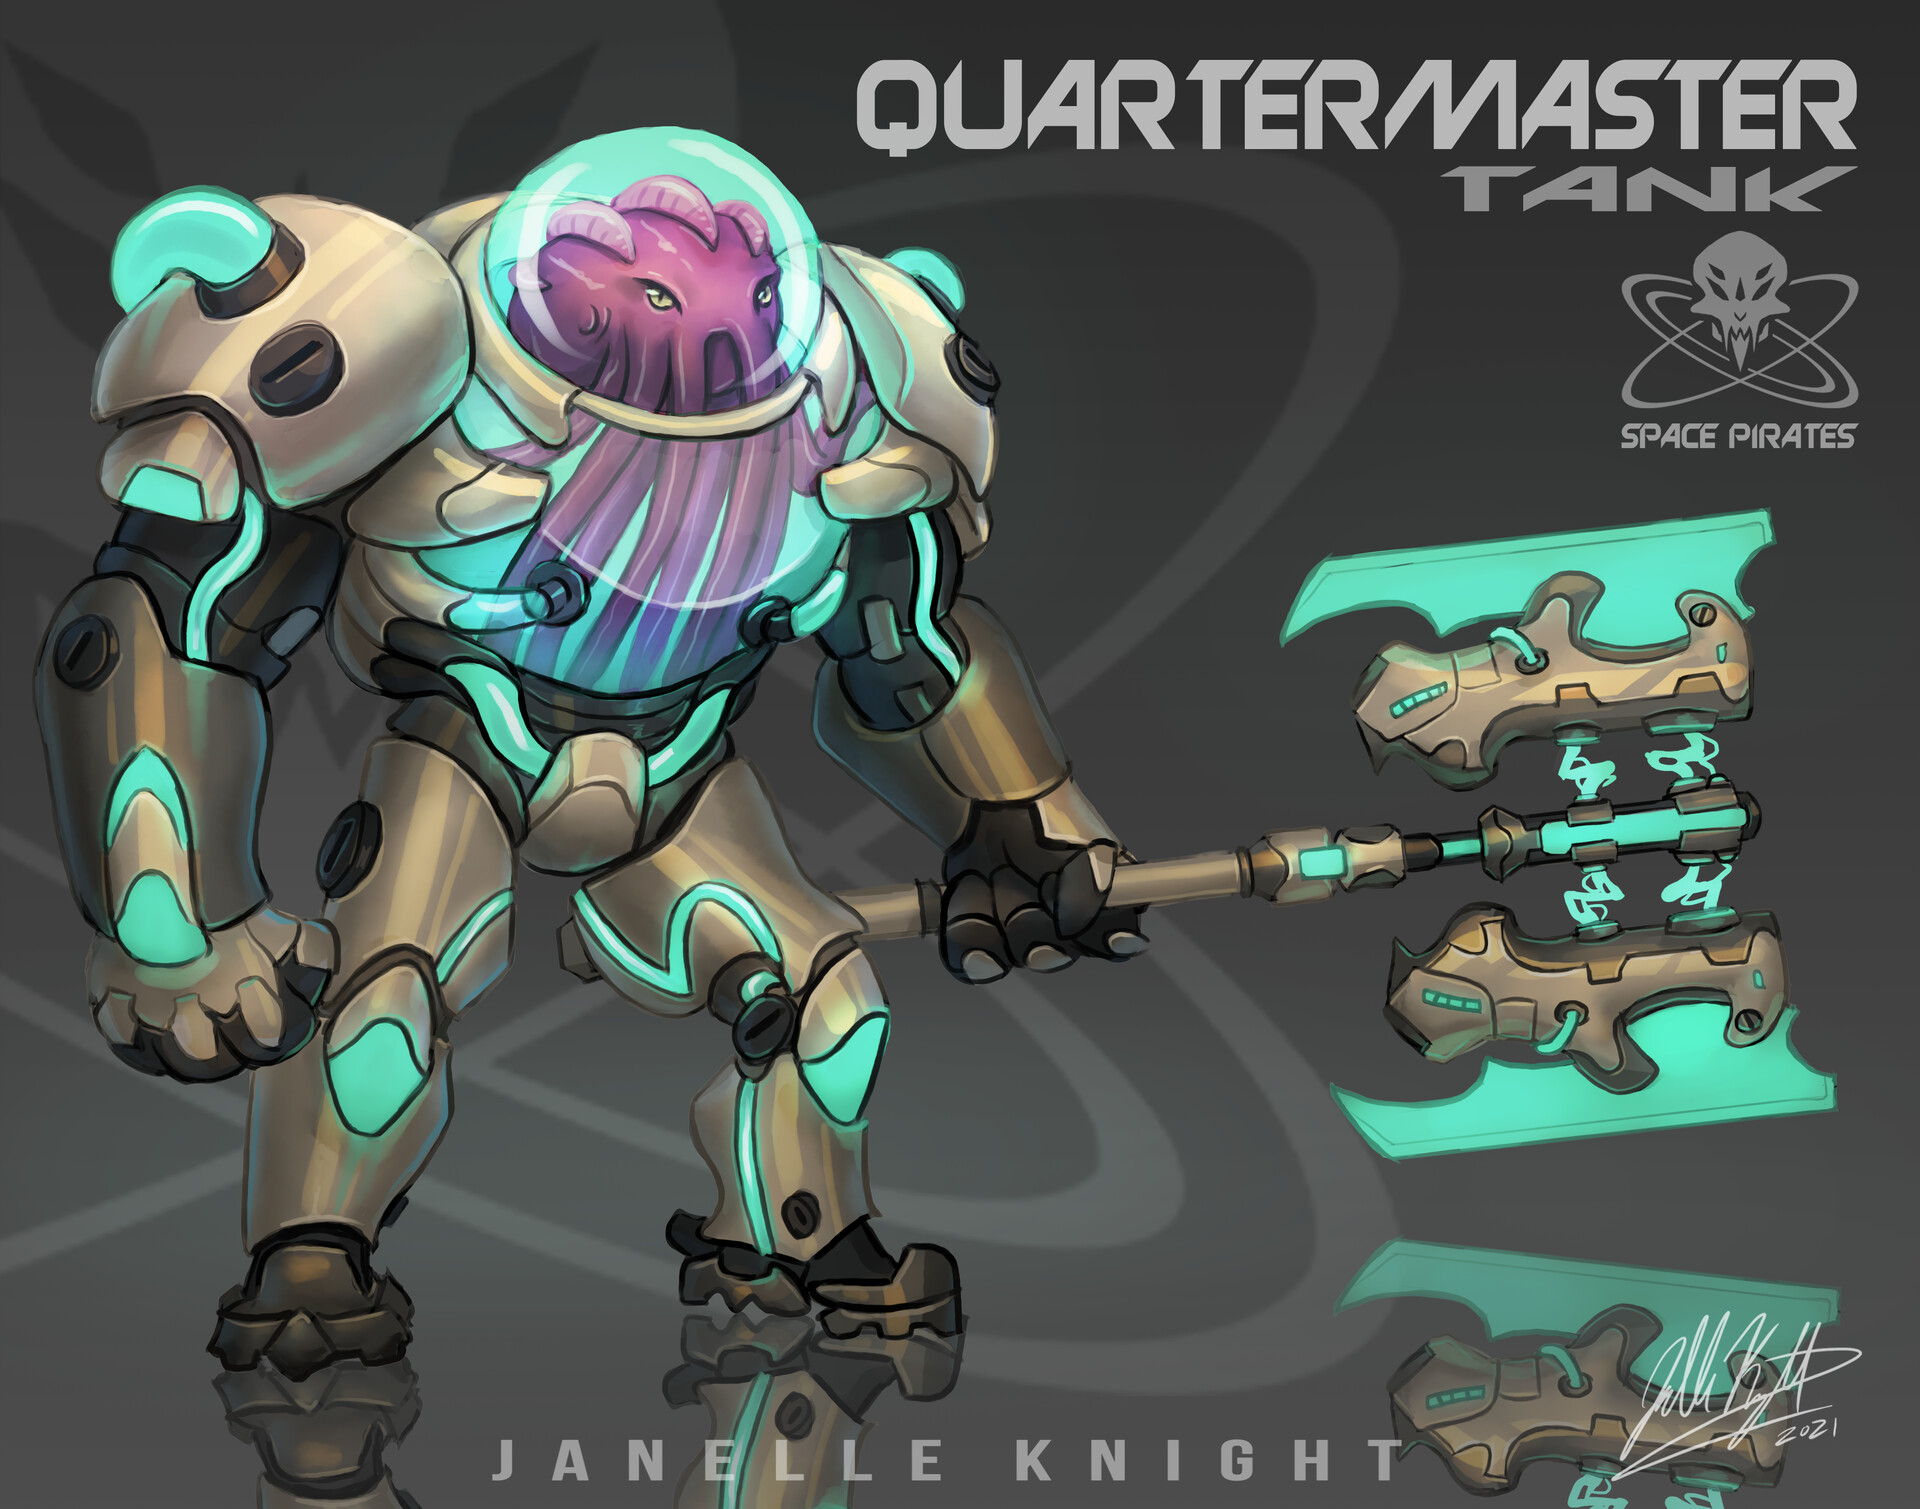 Quartermaster Space Pirates Character concept art